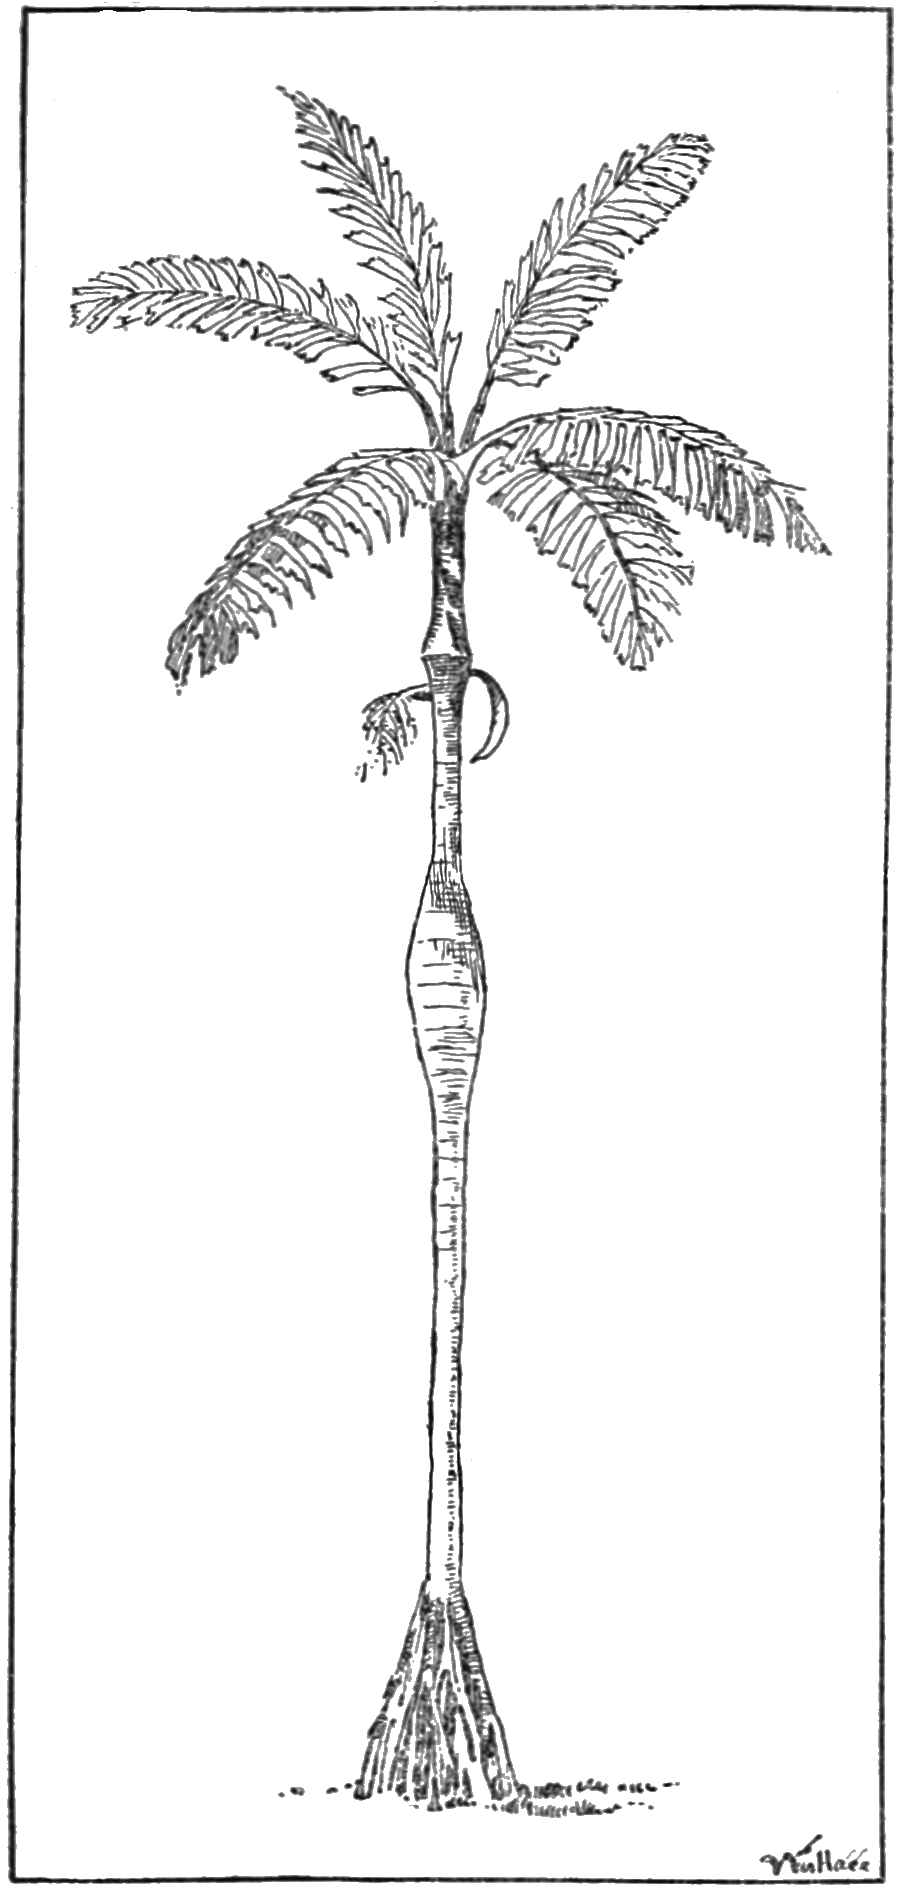 PSM V60 D398 Iriartea ventricosa a bellied palm.png